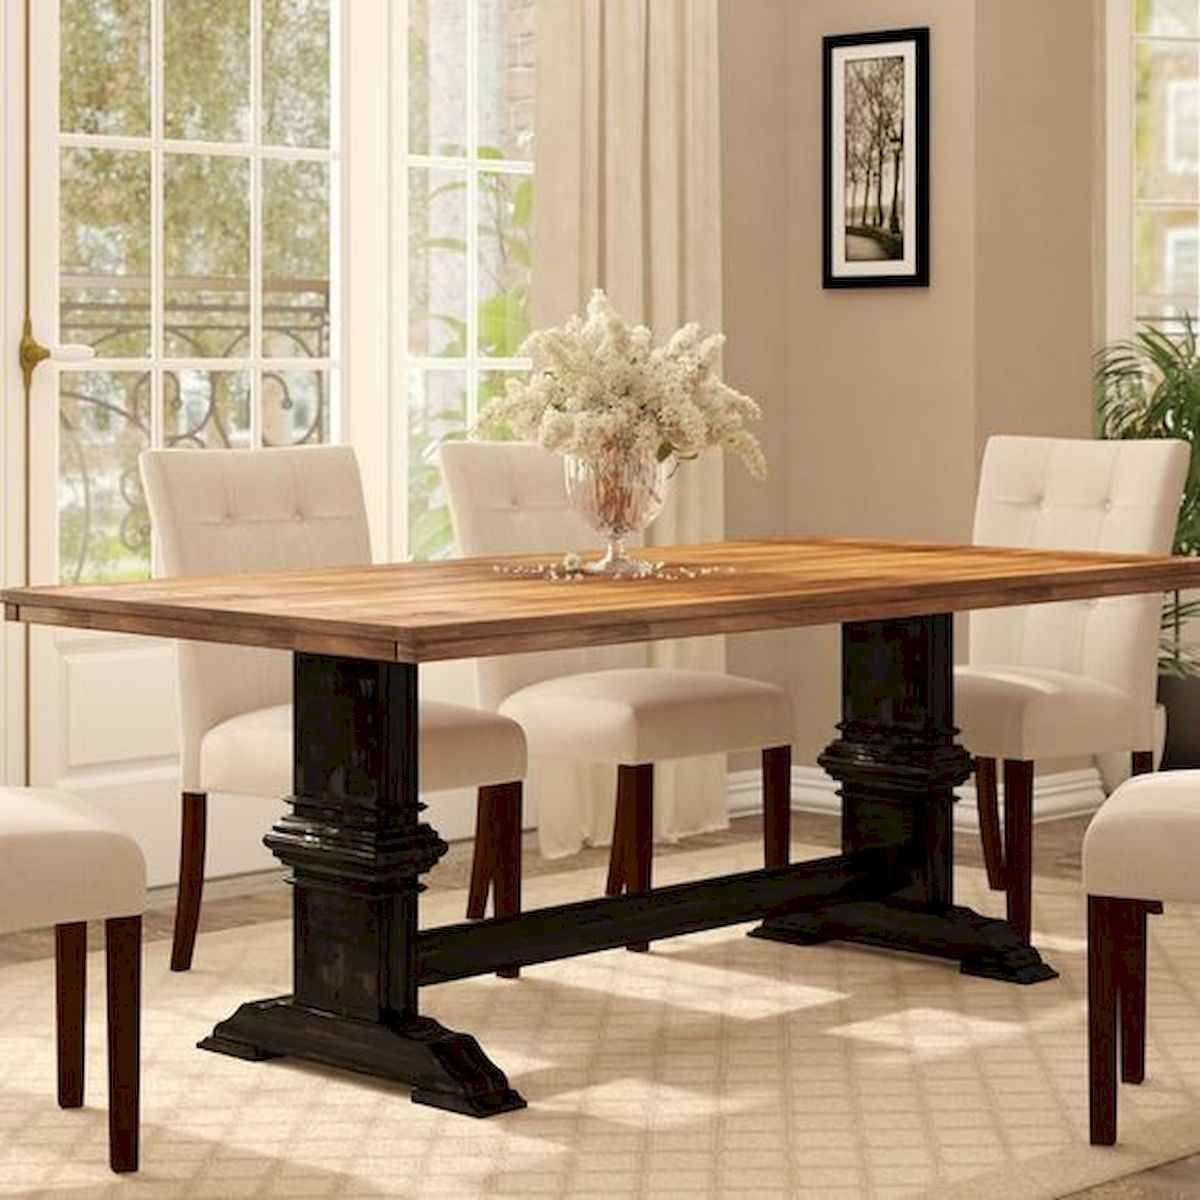 35 awesome farmhouse table plans design ideas for dining